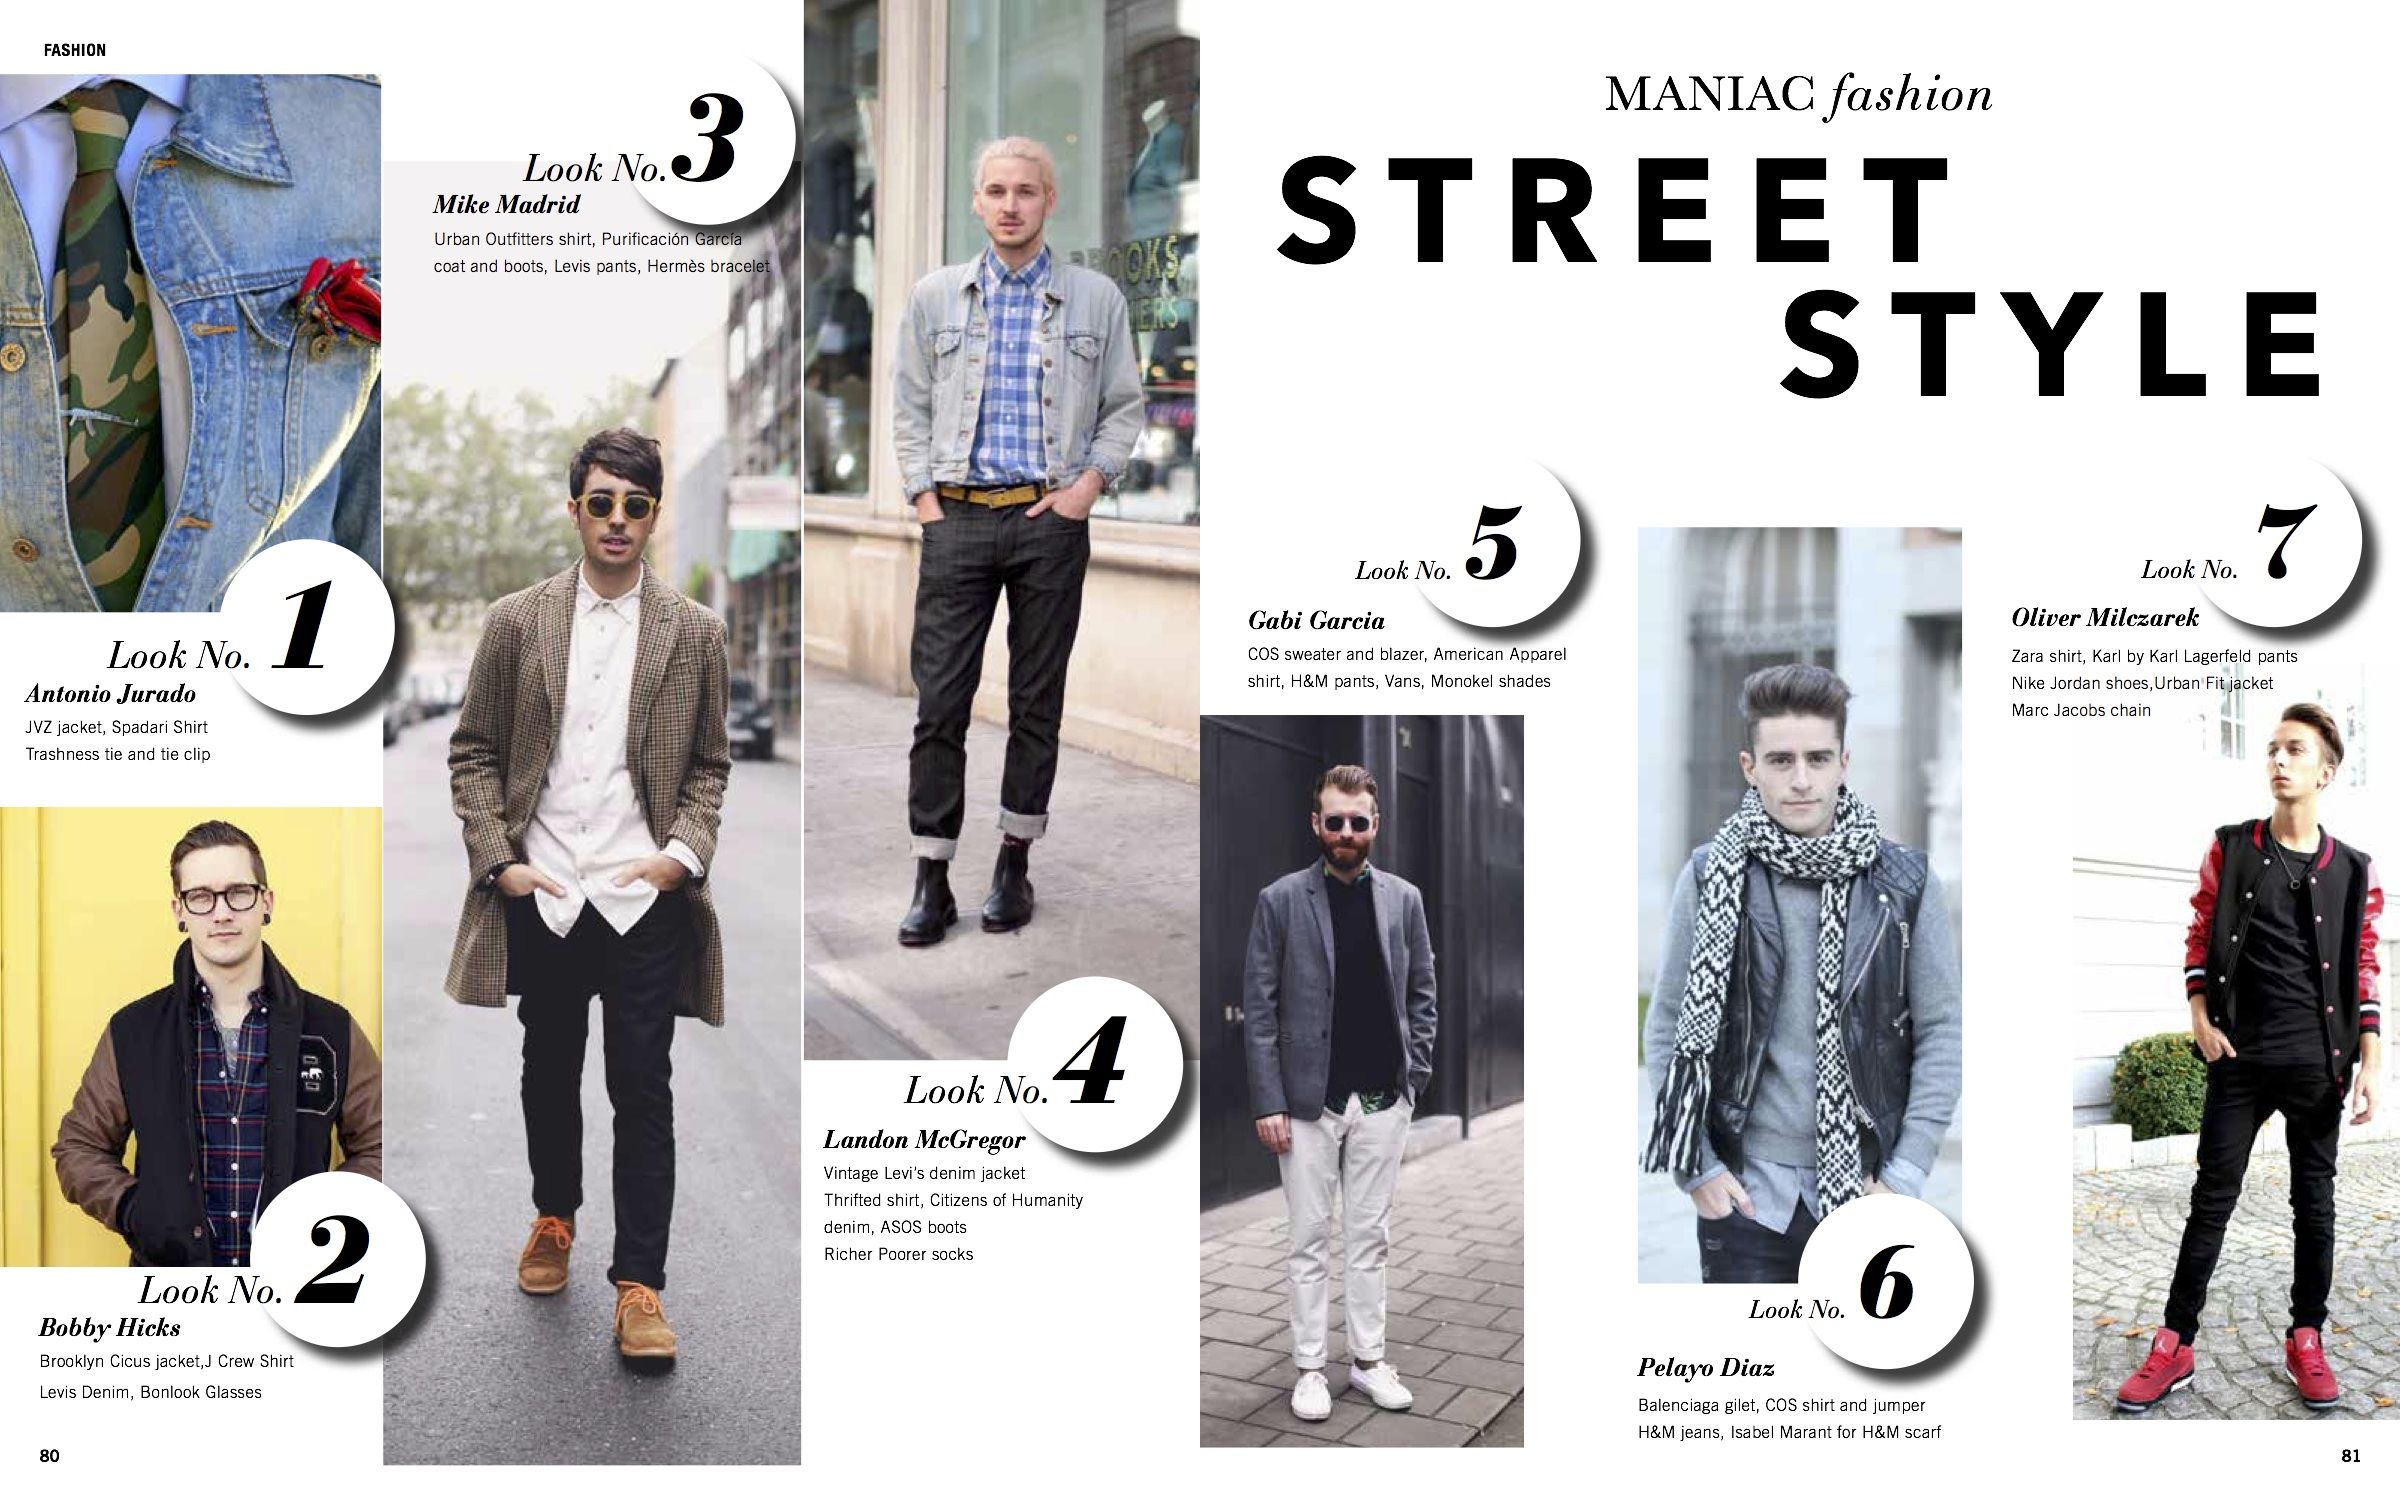 Canada's #1 Fashion and Beauty Magazine. From the parks of Toronto to the Tuileries in Paris, we've got a penchant for capturing the best street style across the globe year-round.